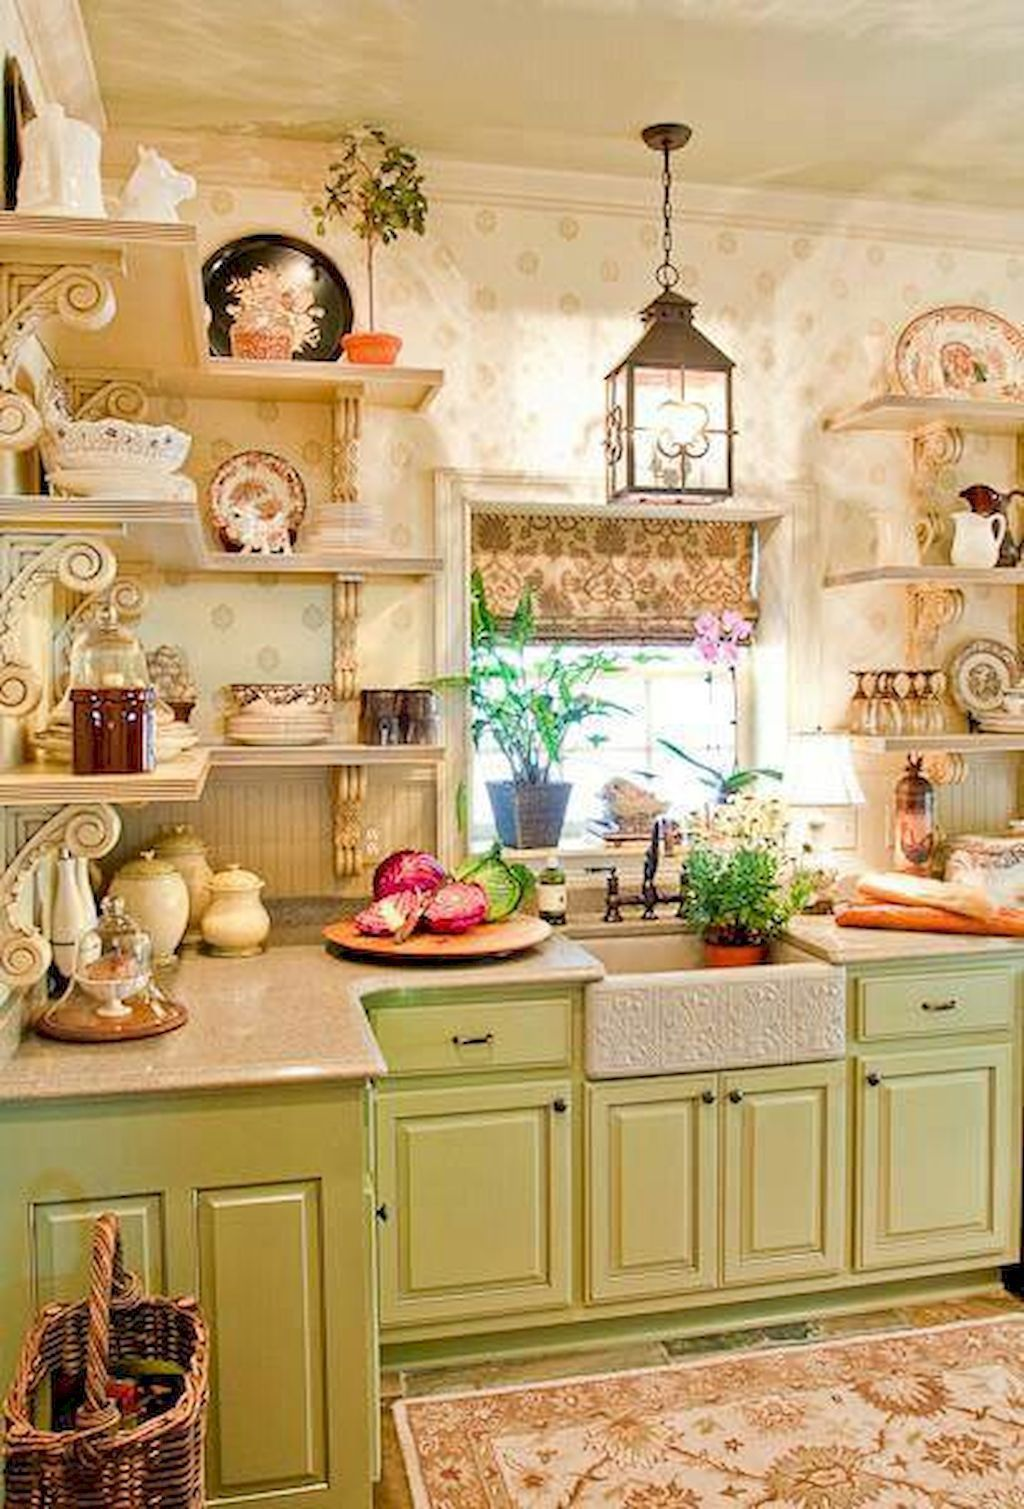 Modern french country kitchen decorating ideas (52 | Modern french ...